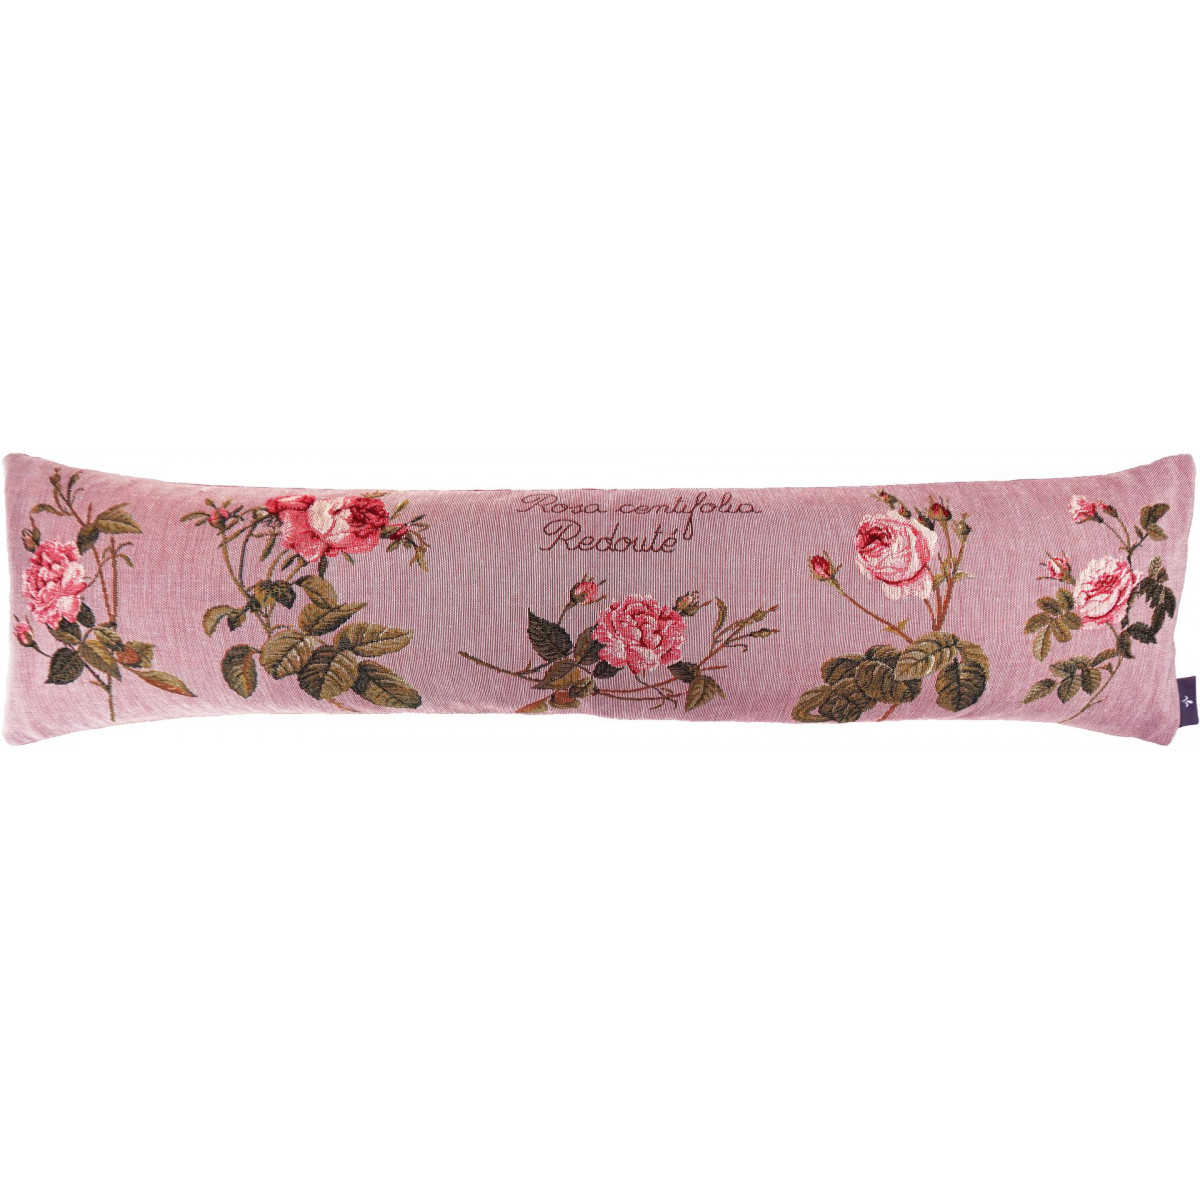 Coussin roses de redouté made in france rose 25x90